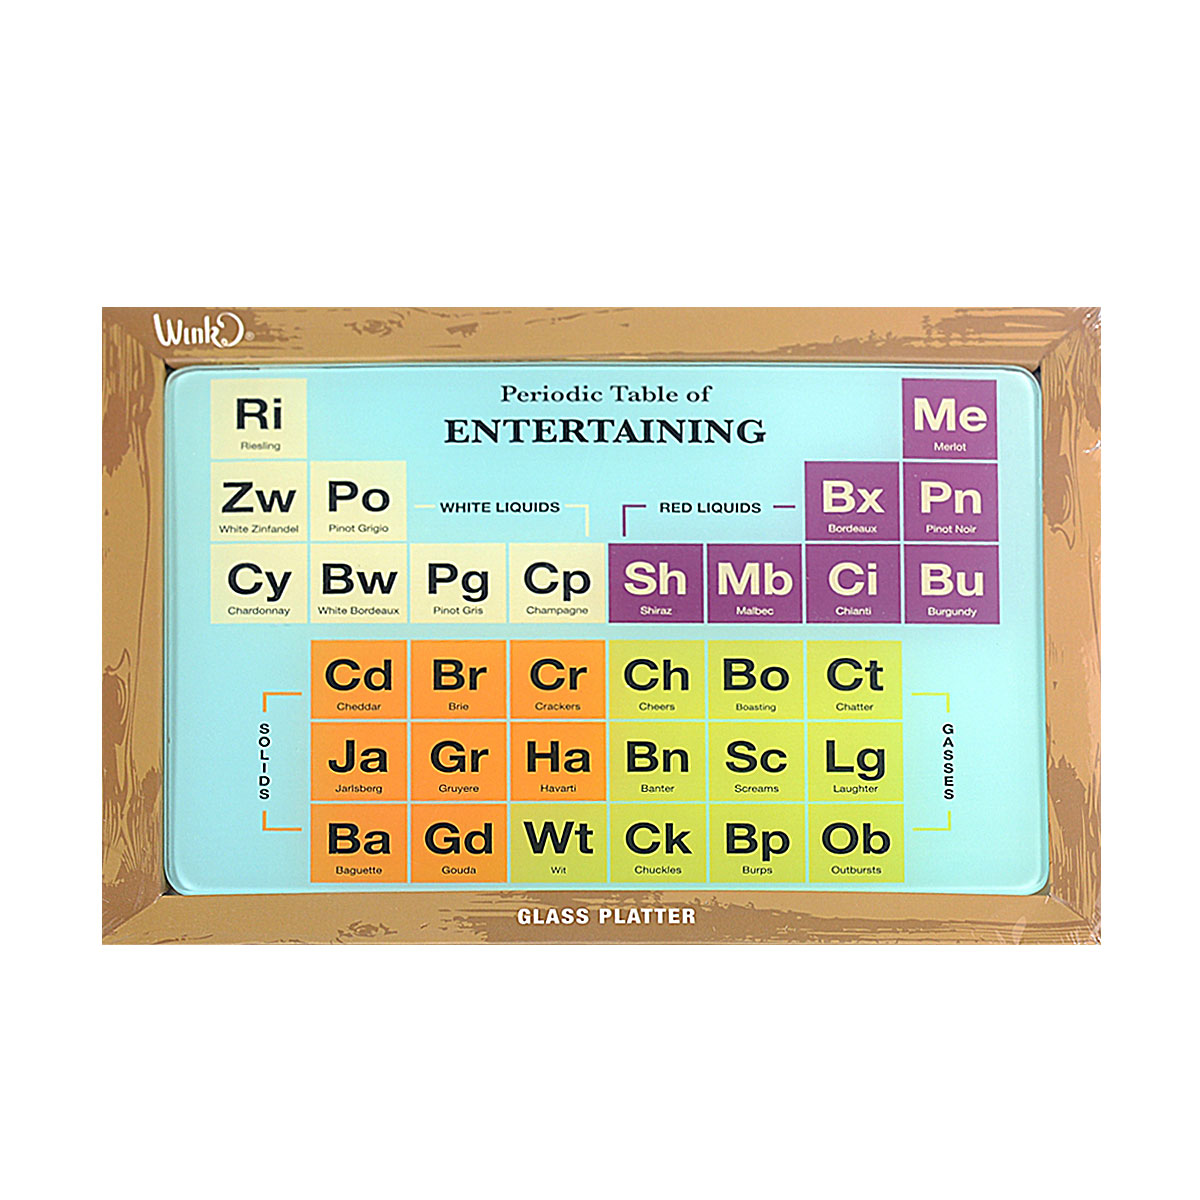 Geek gifts chemistry gifts nerd gifts chemist gifts periodic table of entertaining glass platter gamestrikefo Gallery